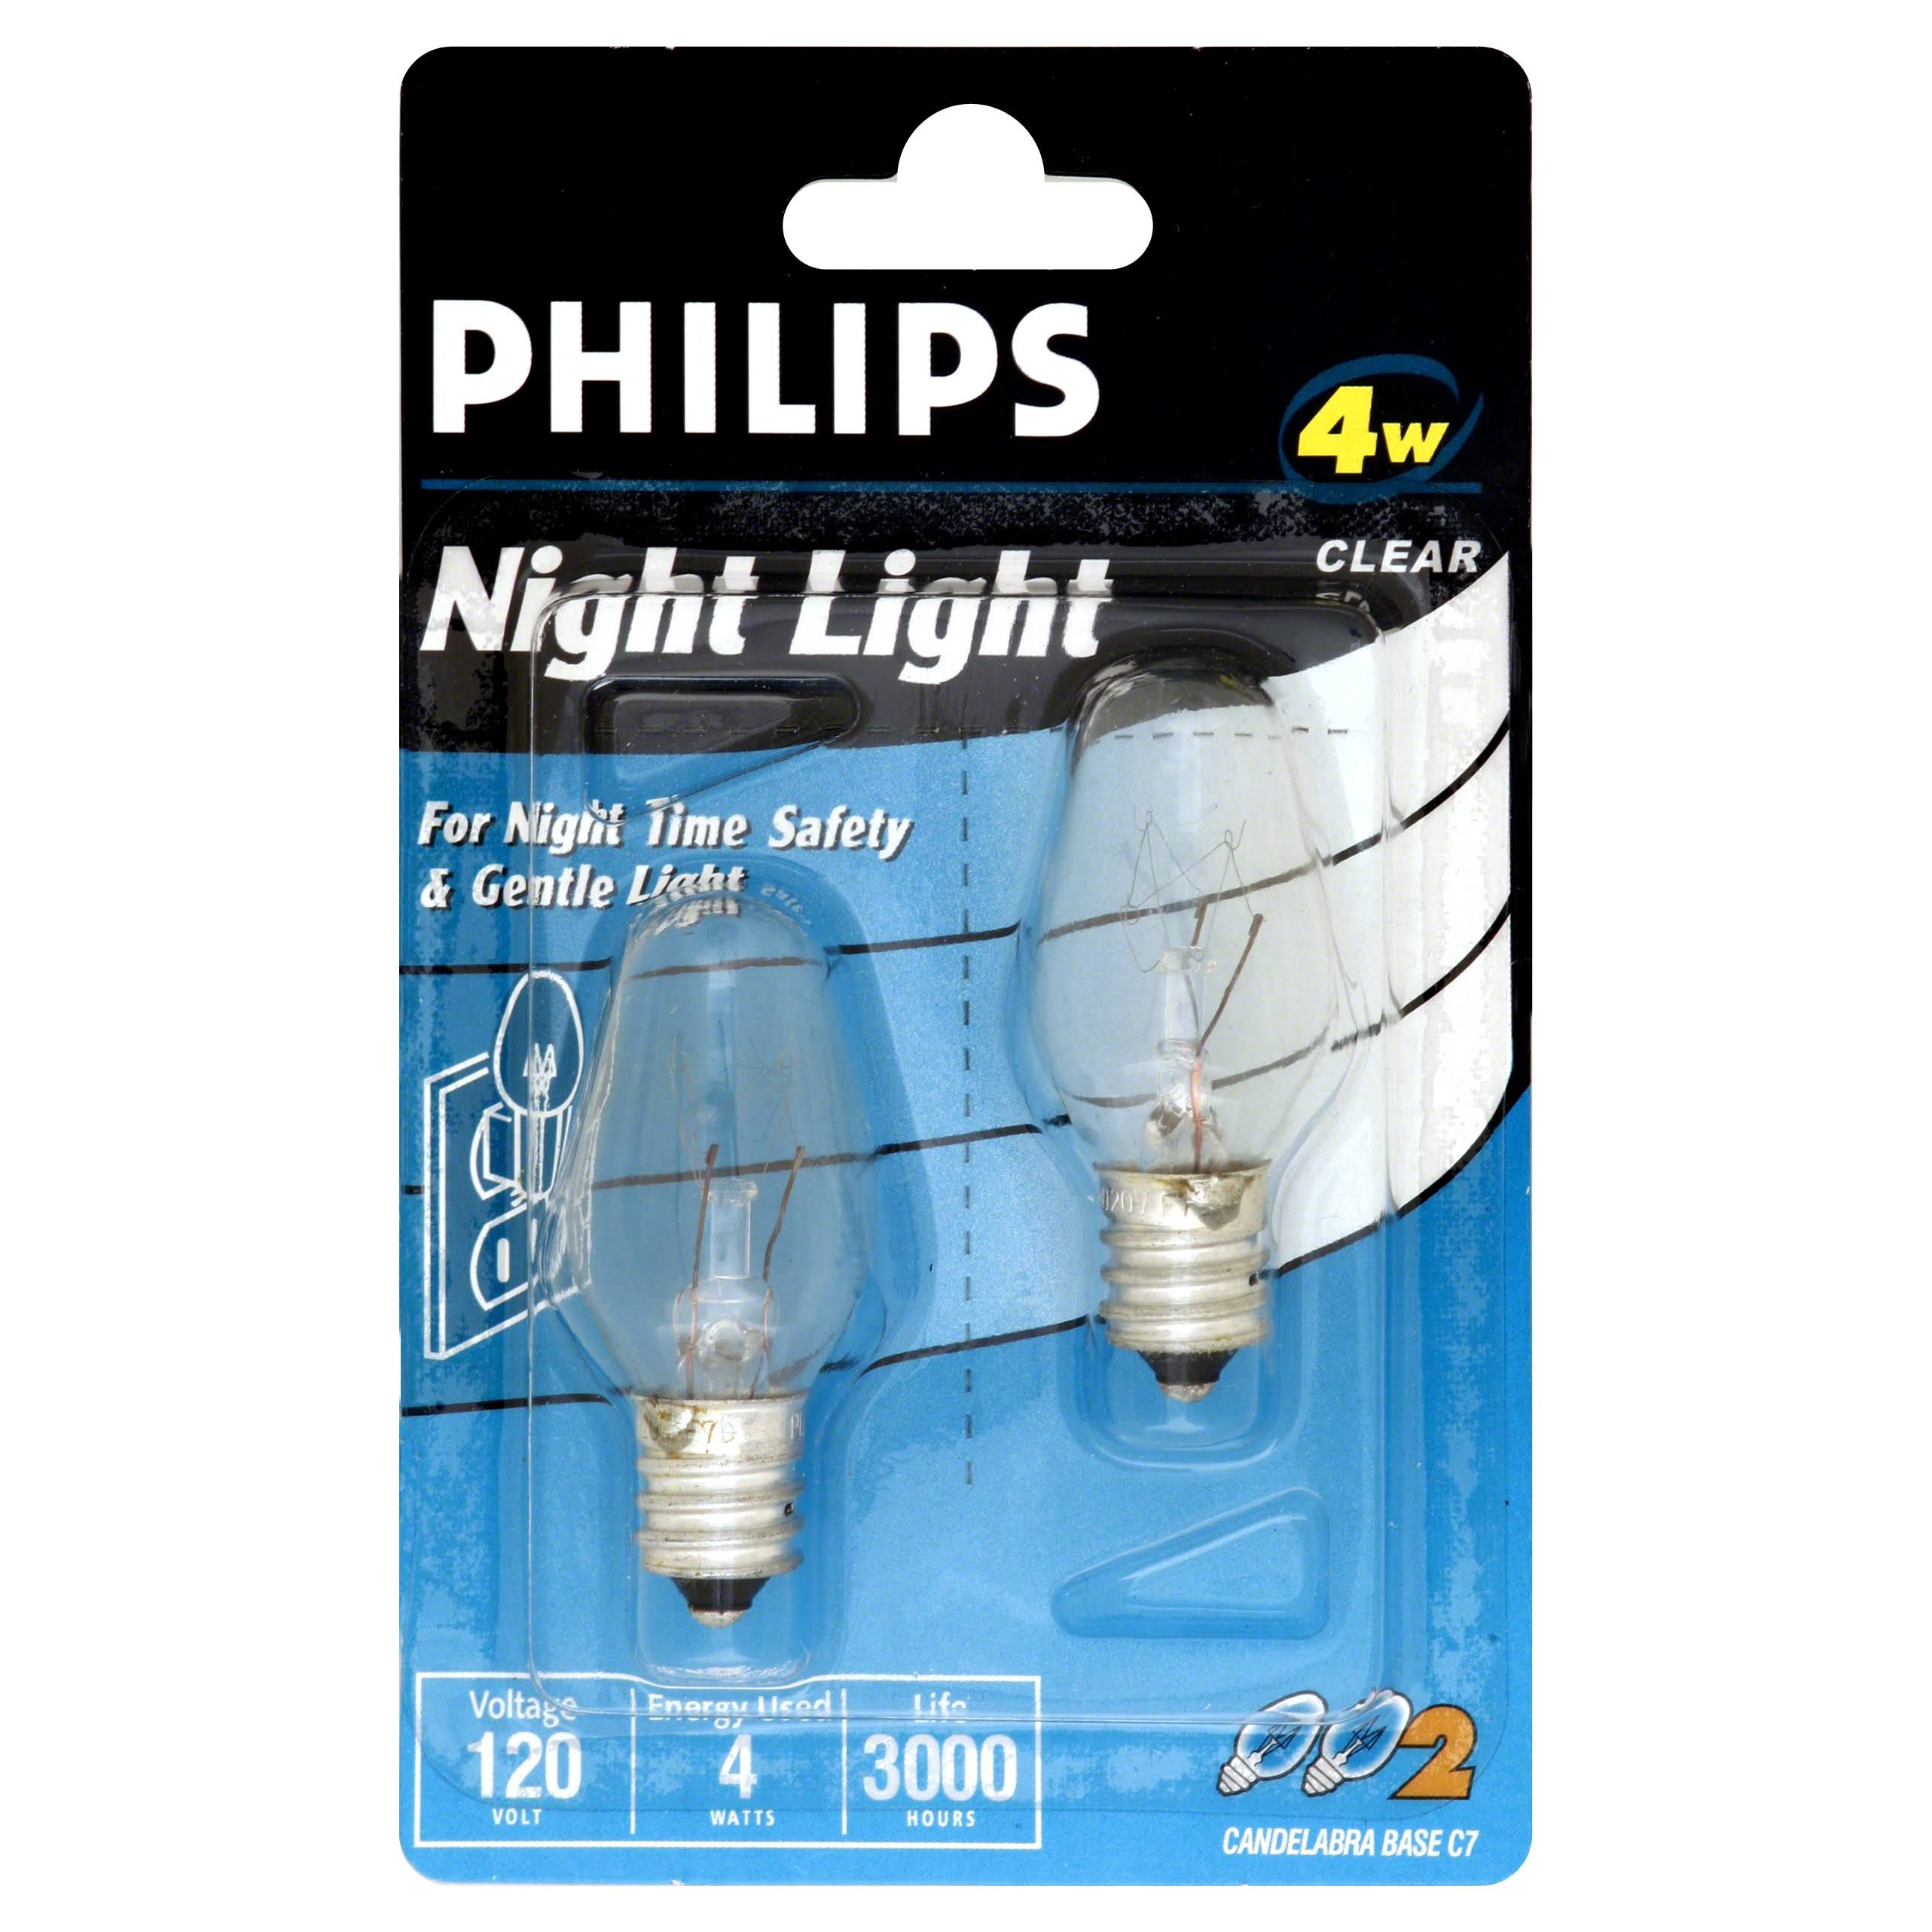 Phillips 4 Watt Night Light Bulbs - Clear